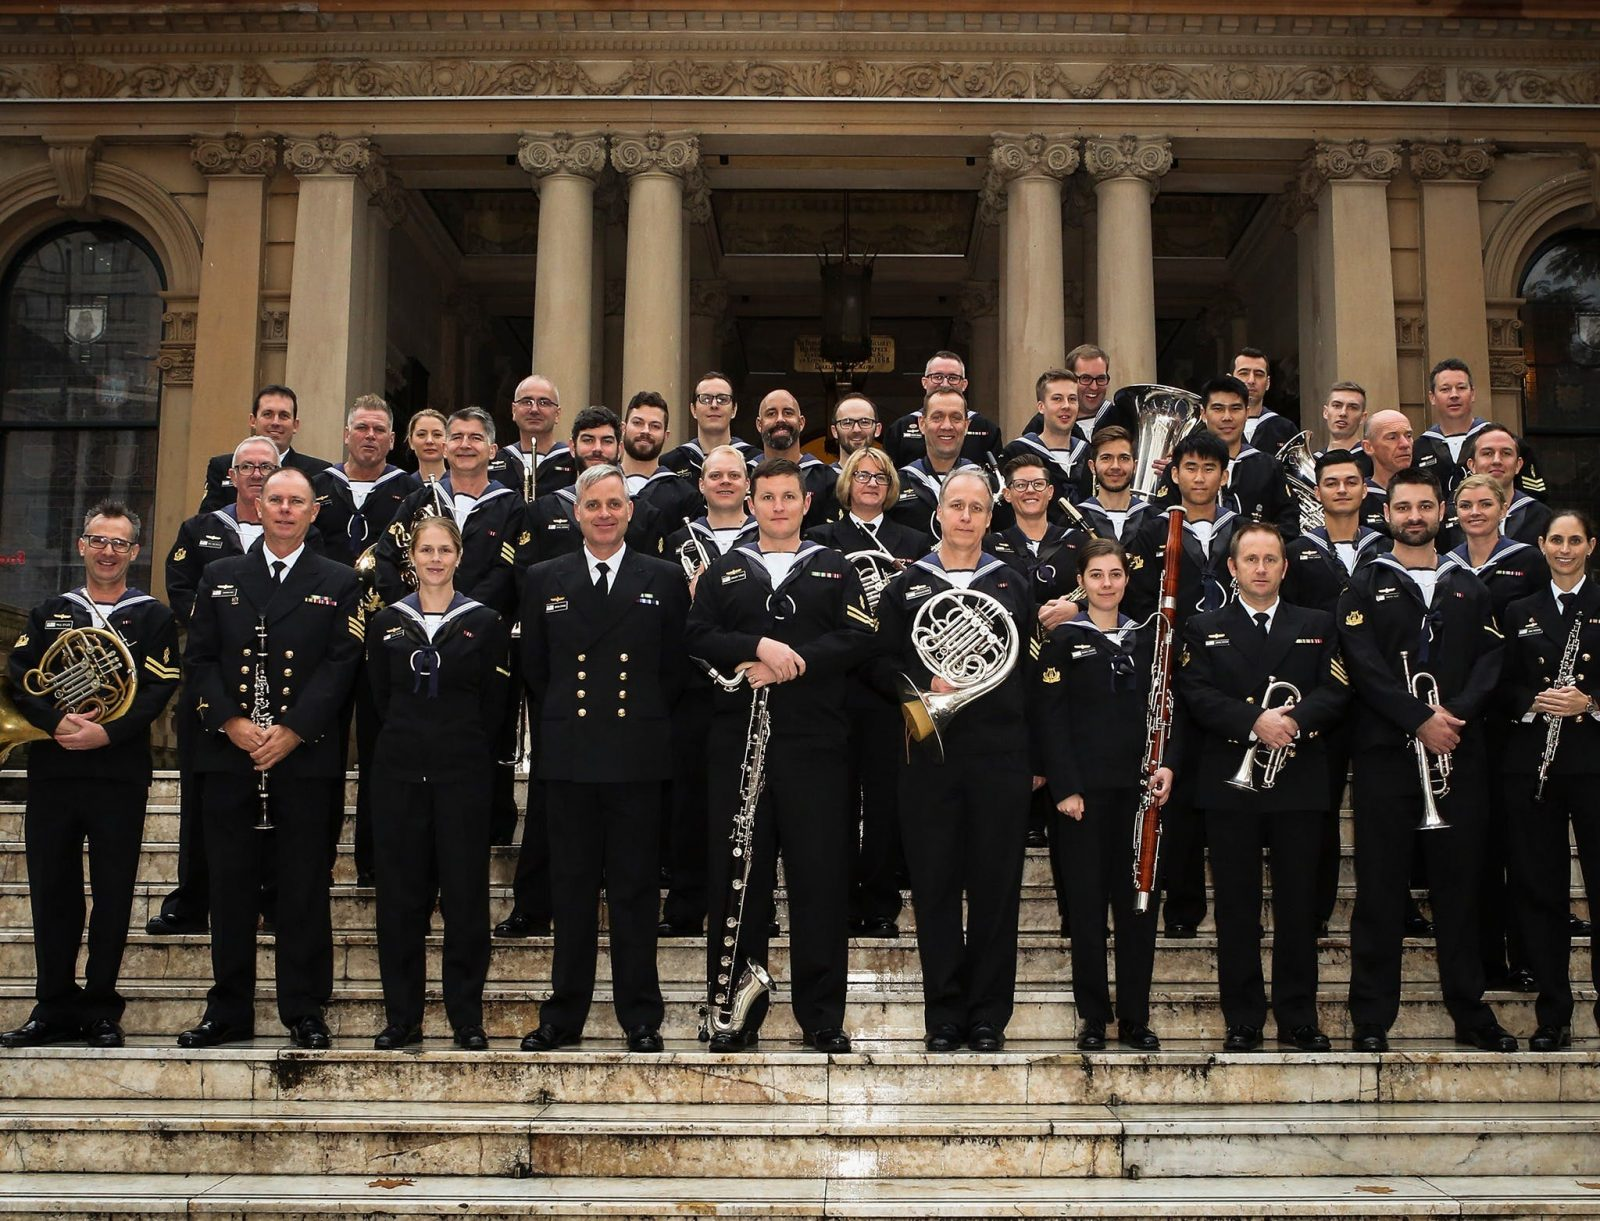 Band standing together on stairs